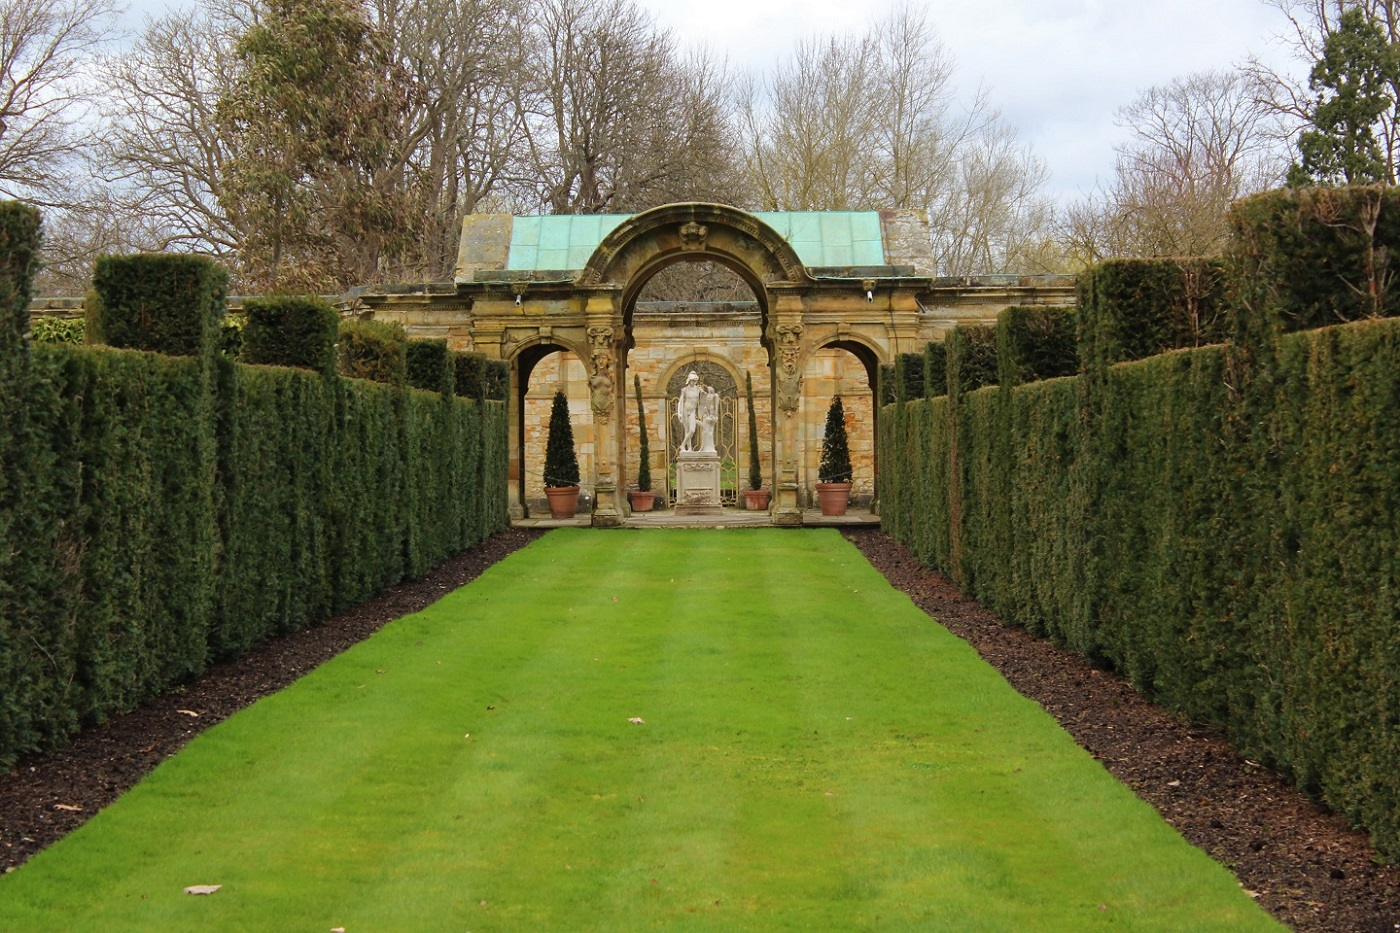 Landscaped Italian garden at Hever Castle